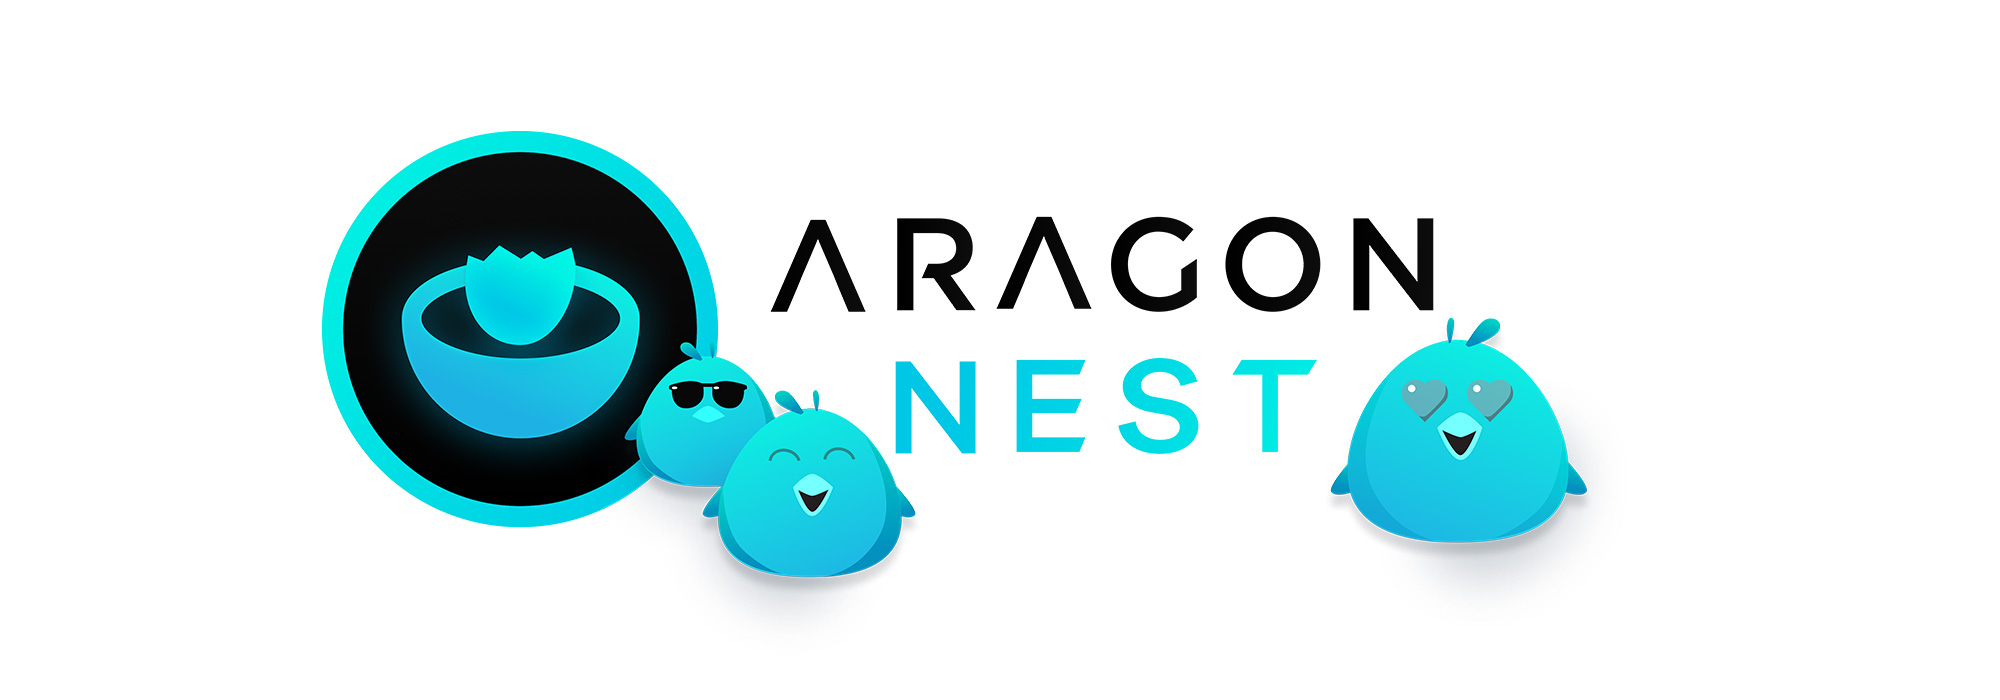 Aragon Nest: Updates from the teams #1